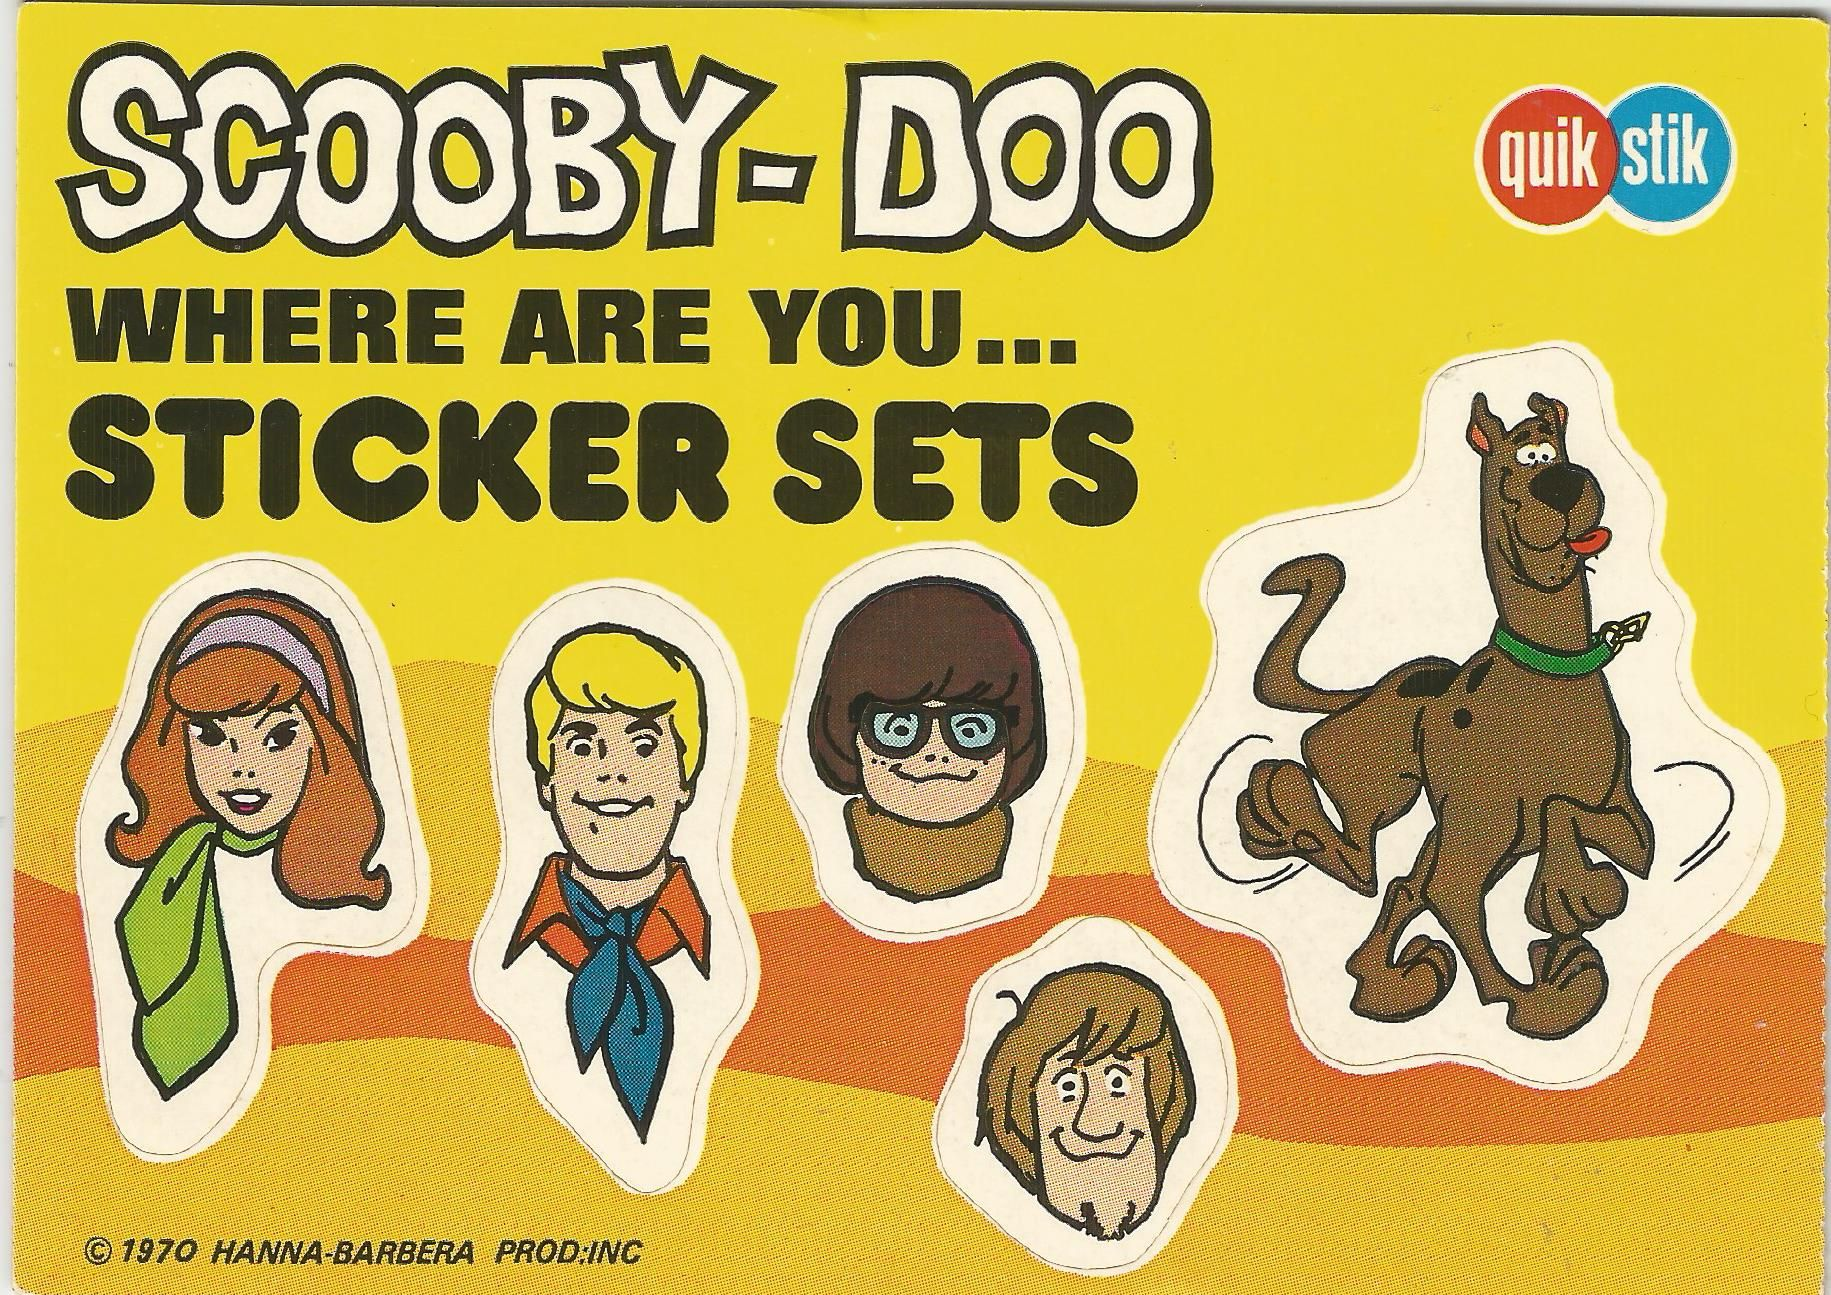 1970 Quik Stik Scooby-Doo Sticker Sets | All things Scooby doo ...